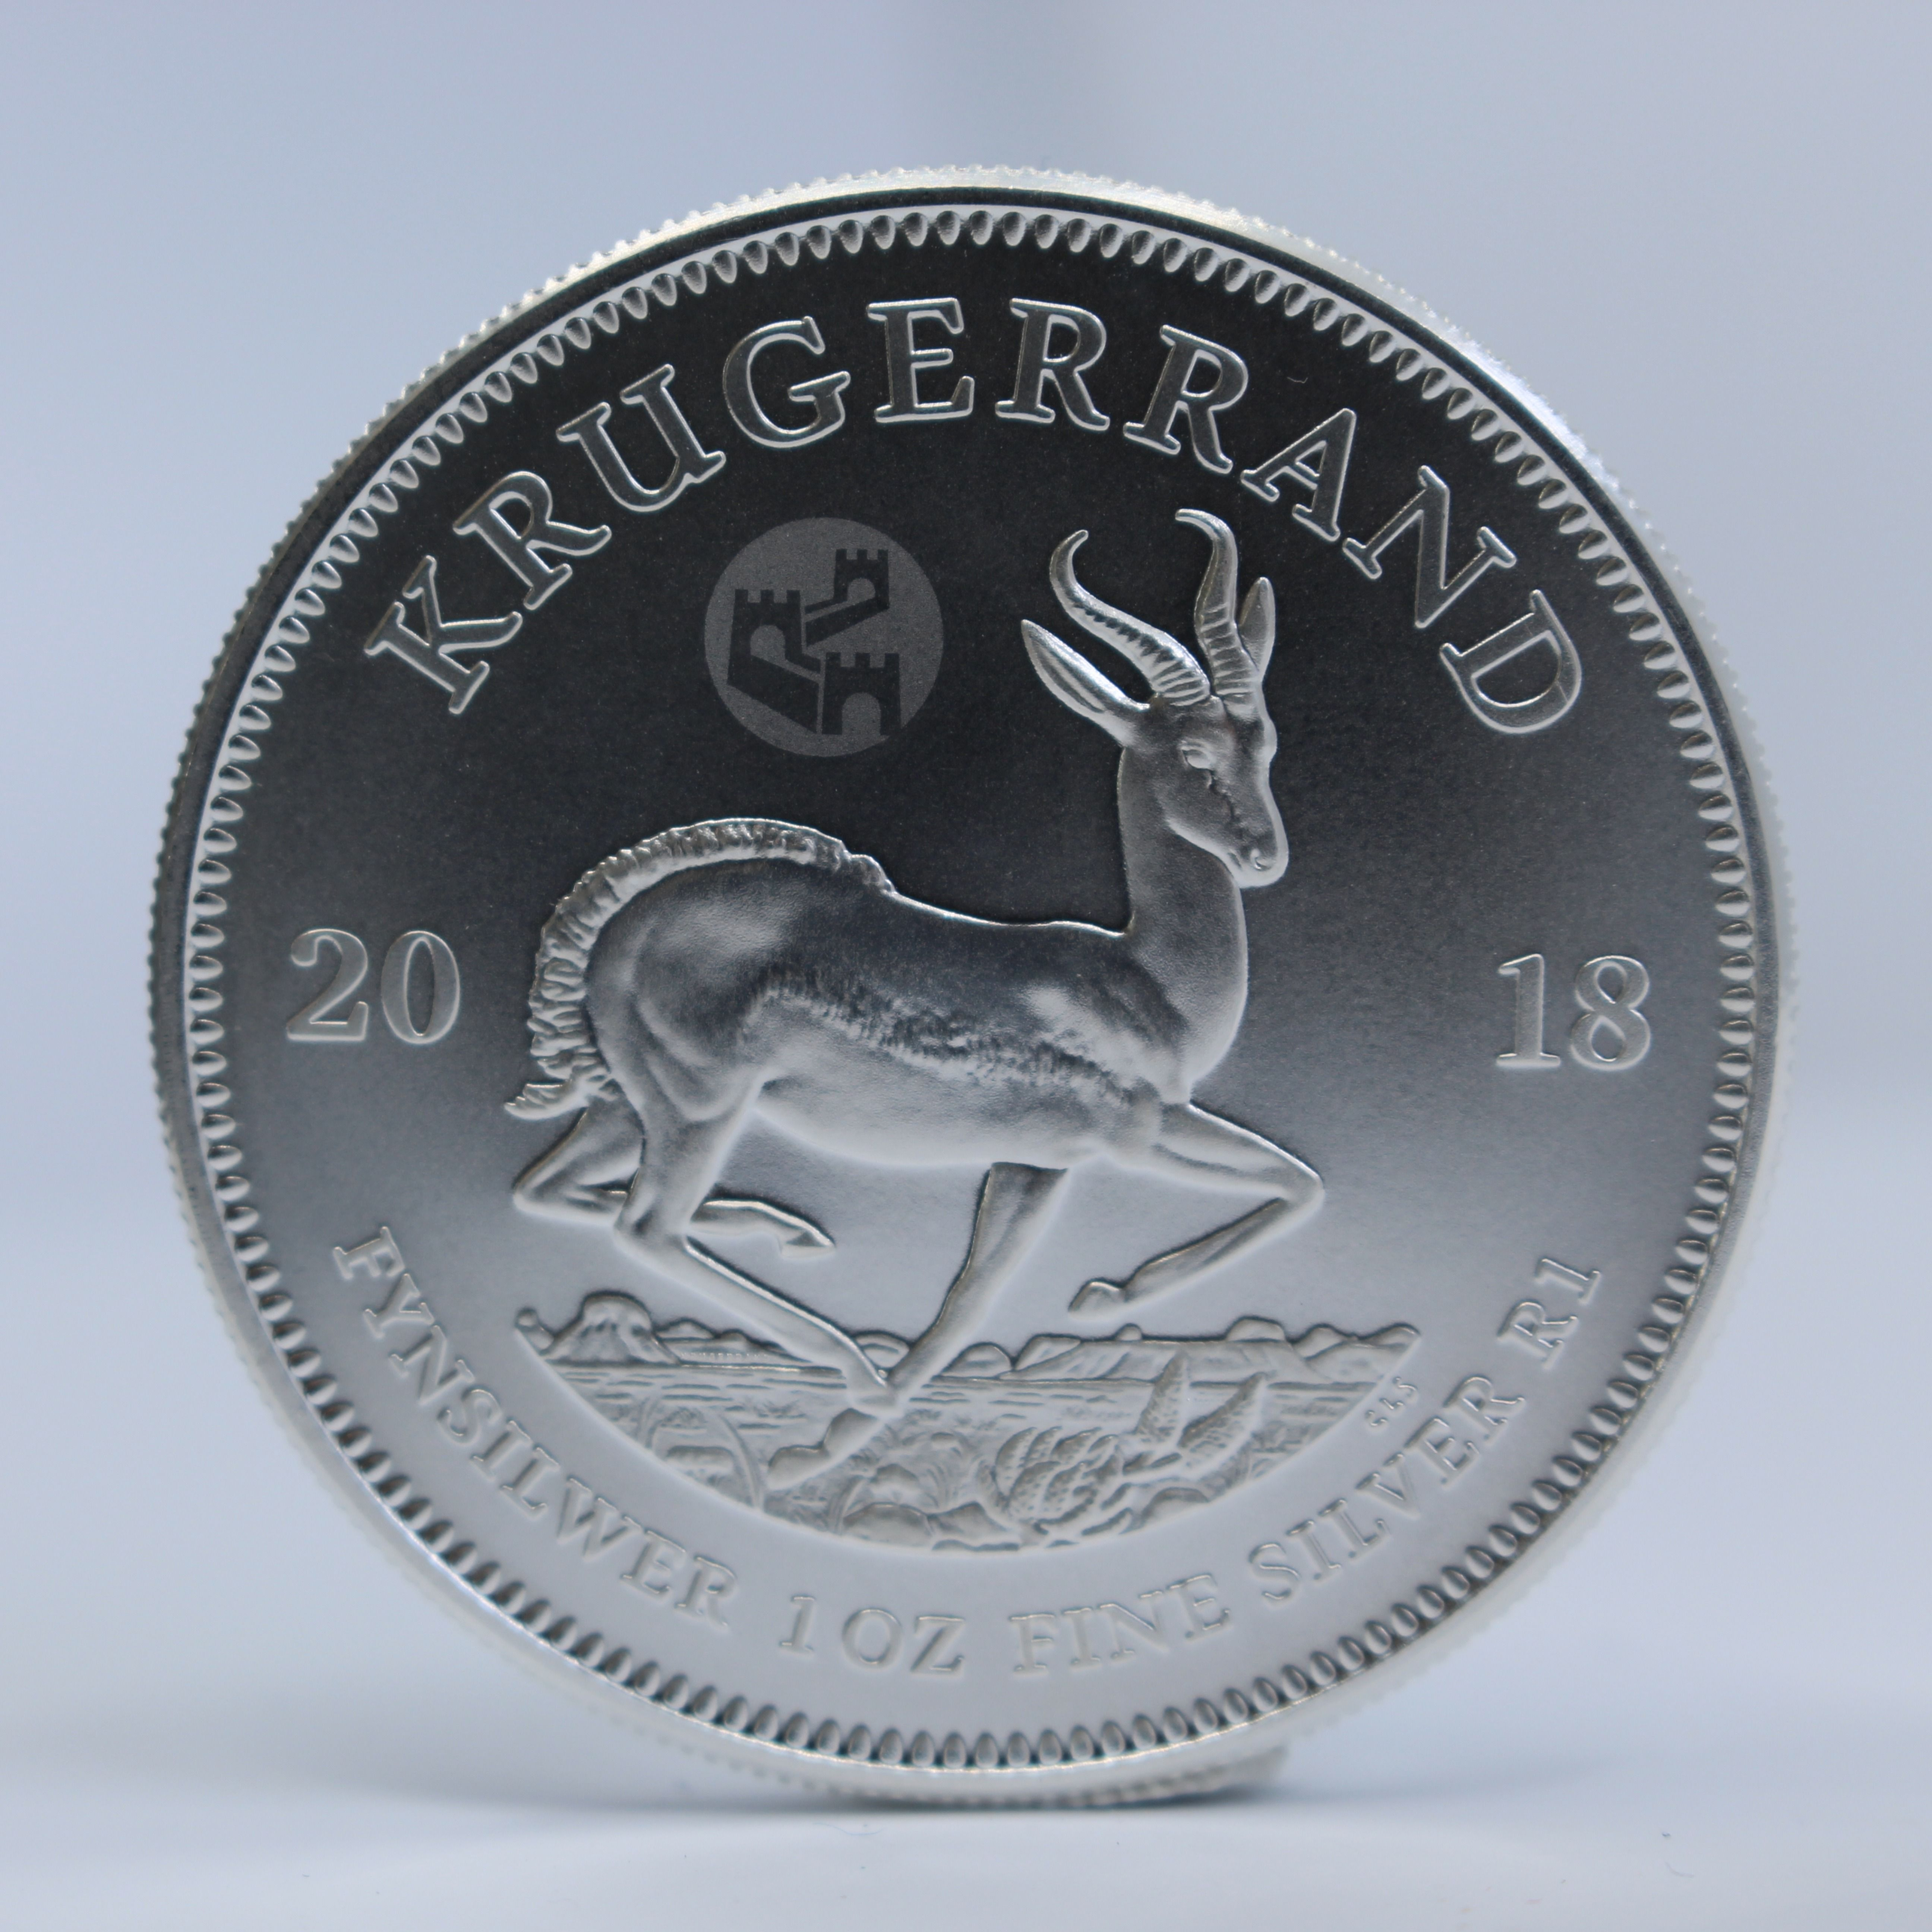 2019 1 Oz South Africa Krugerrand 999 Silver Proof Coin Proof Coins Coins Silver Krugerrand